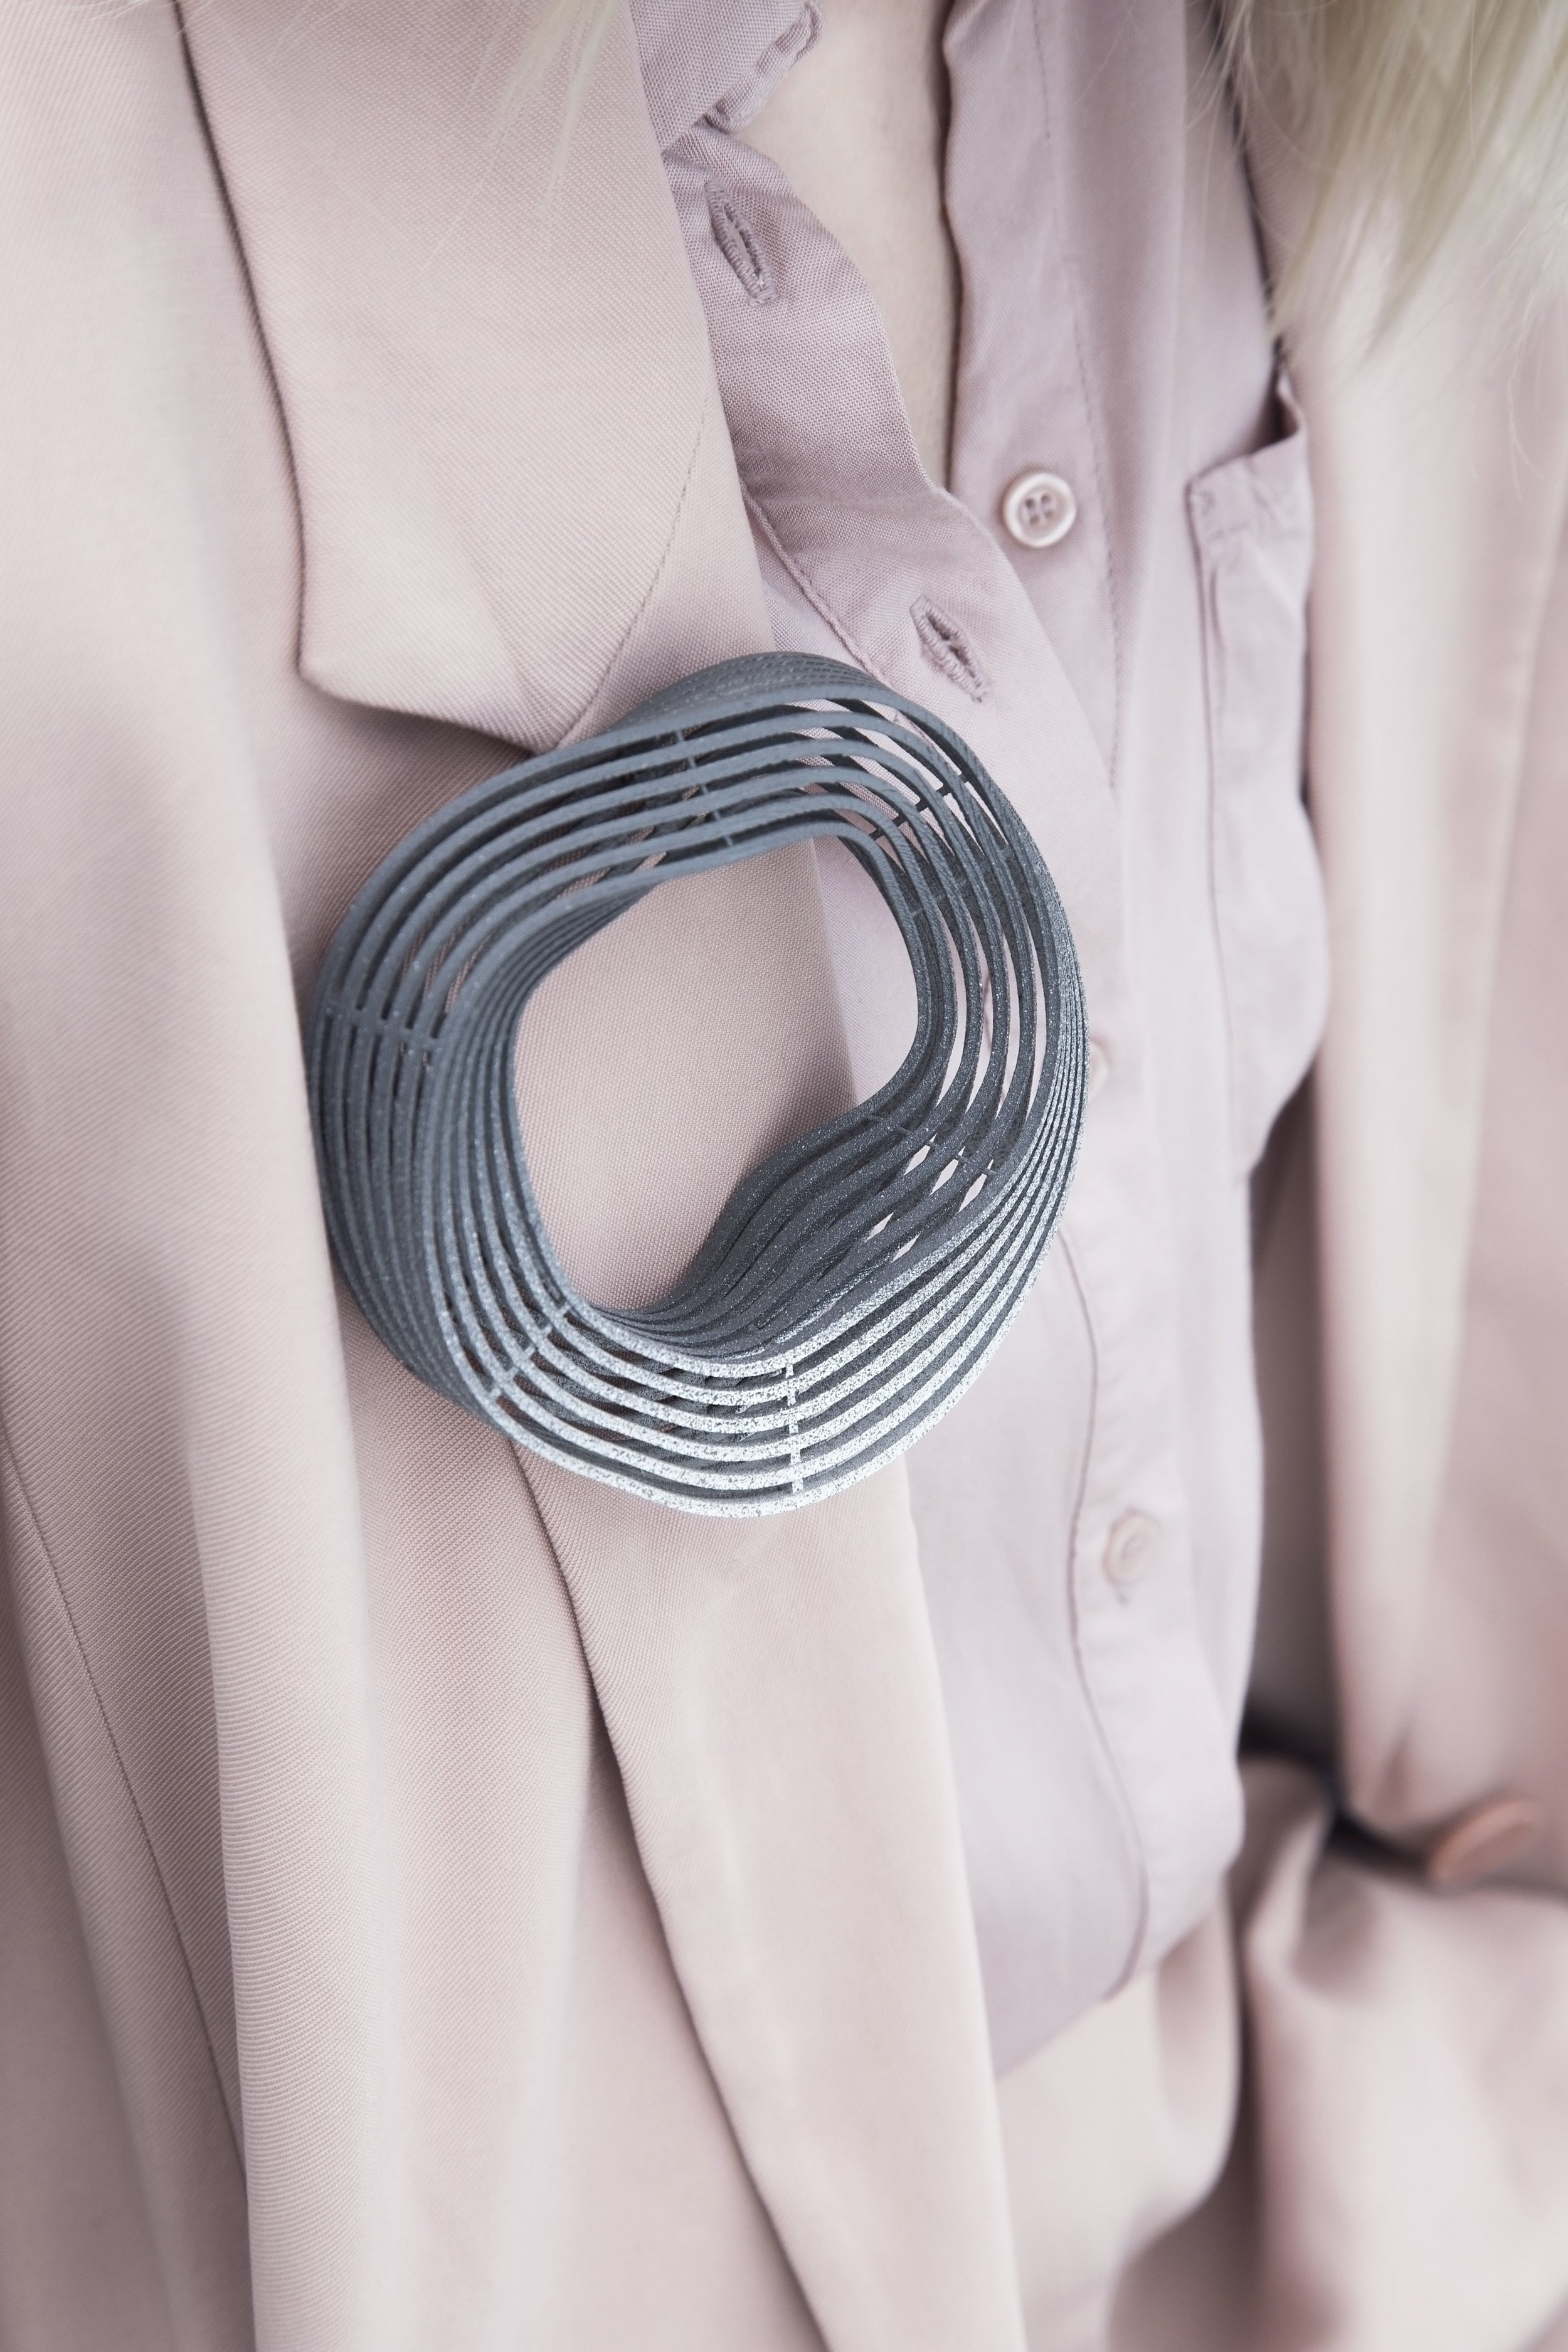 Cable Management Brooch